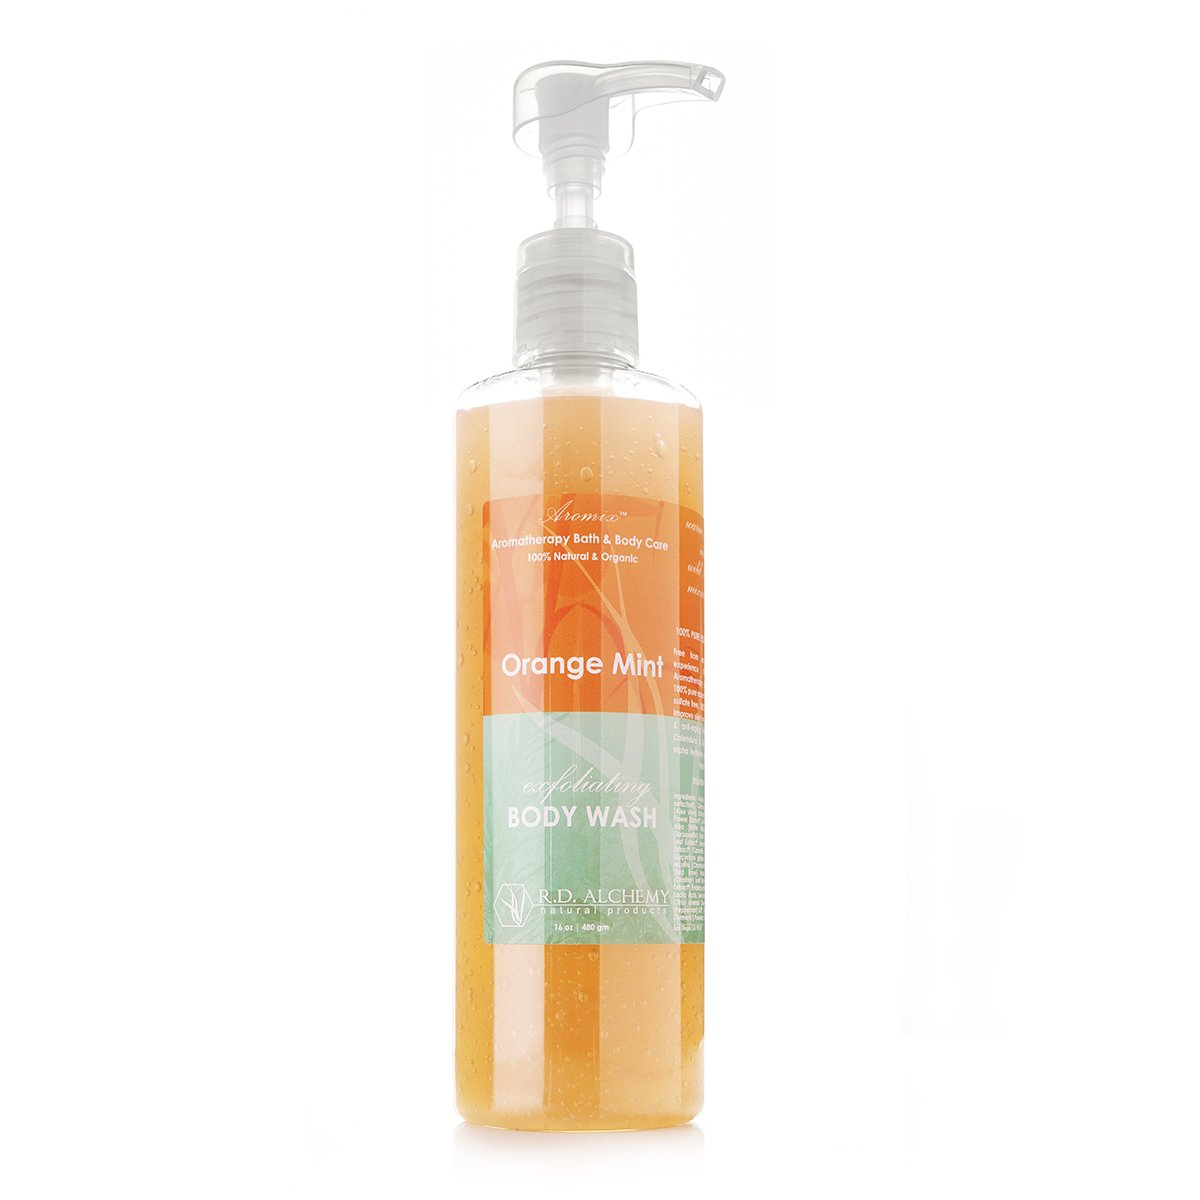 Orange Mint - Body Wash Shower Gel